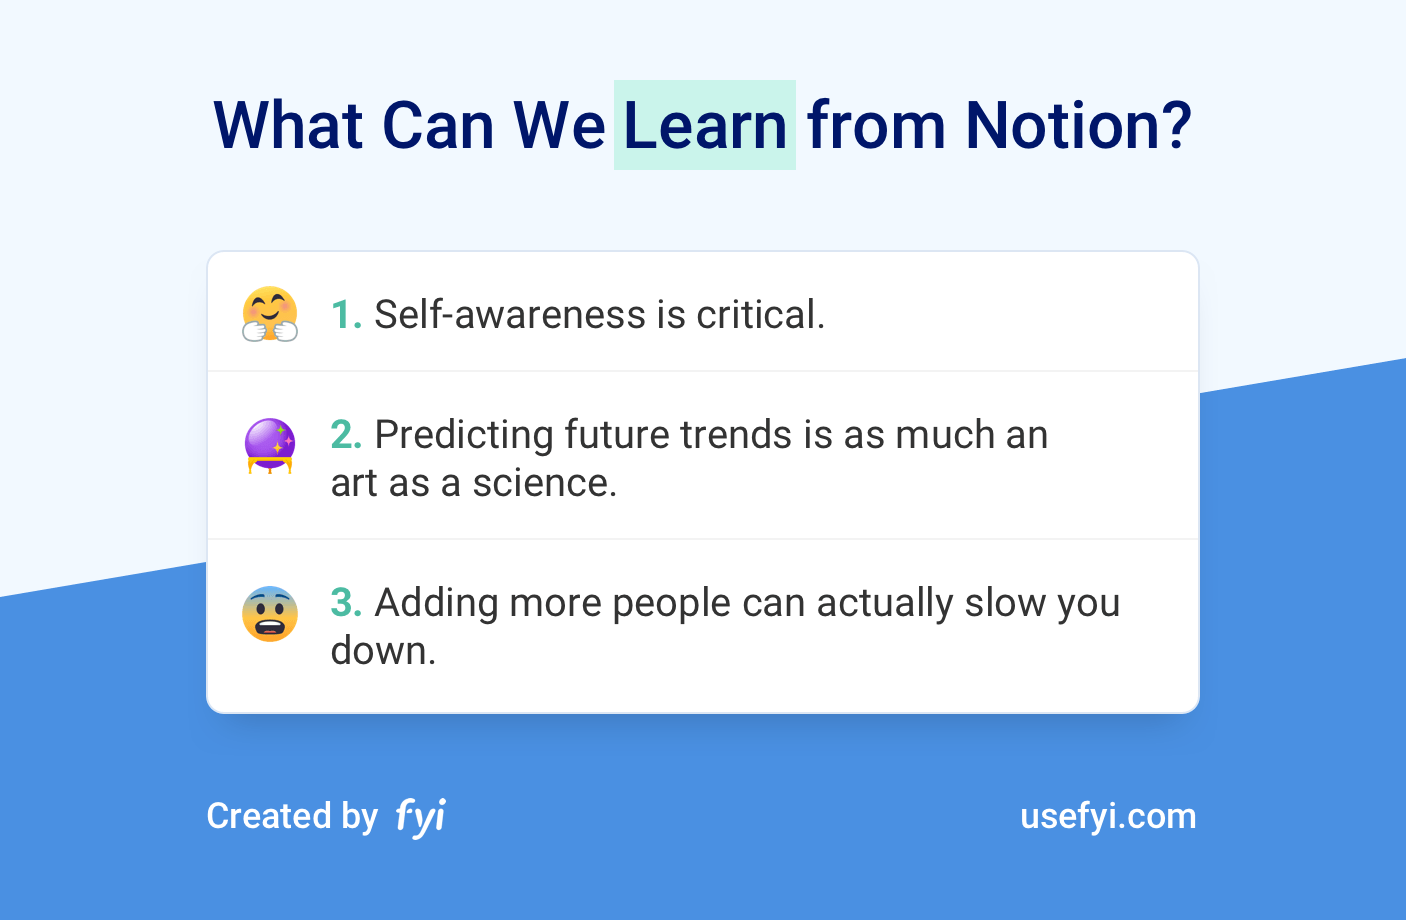 Learnings from Notion